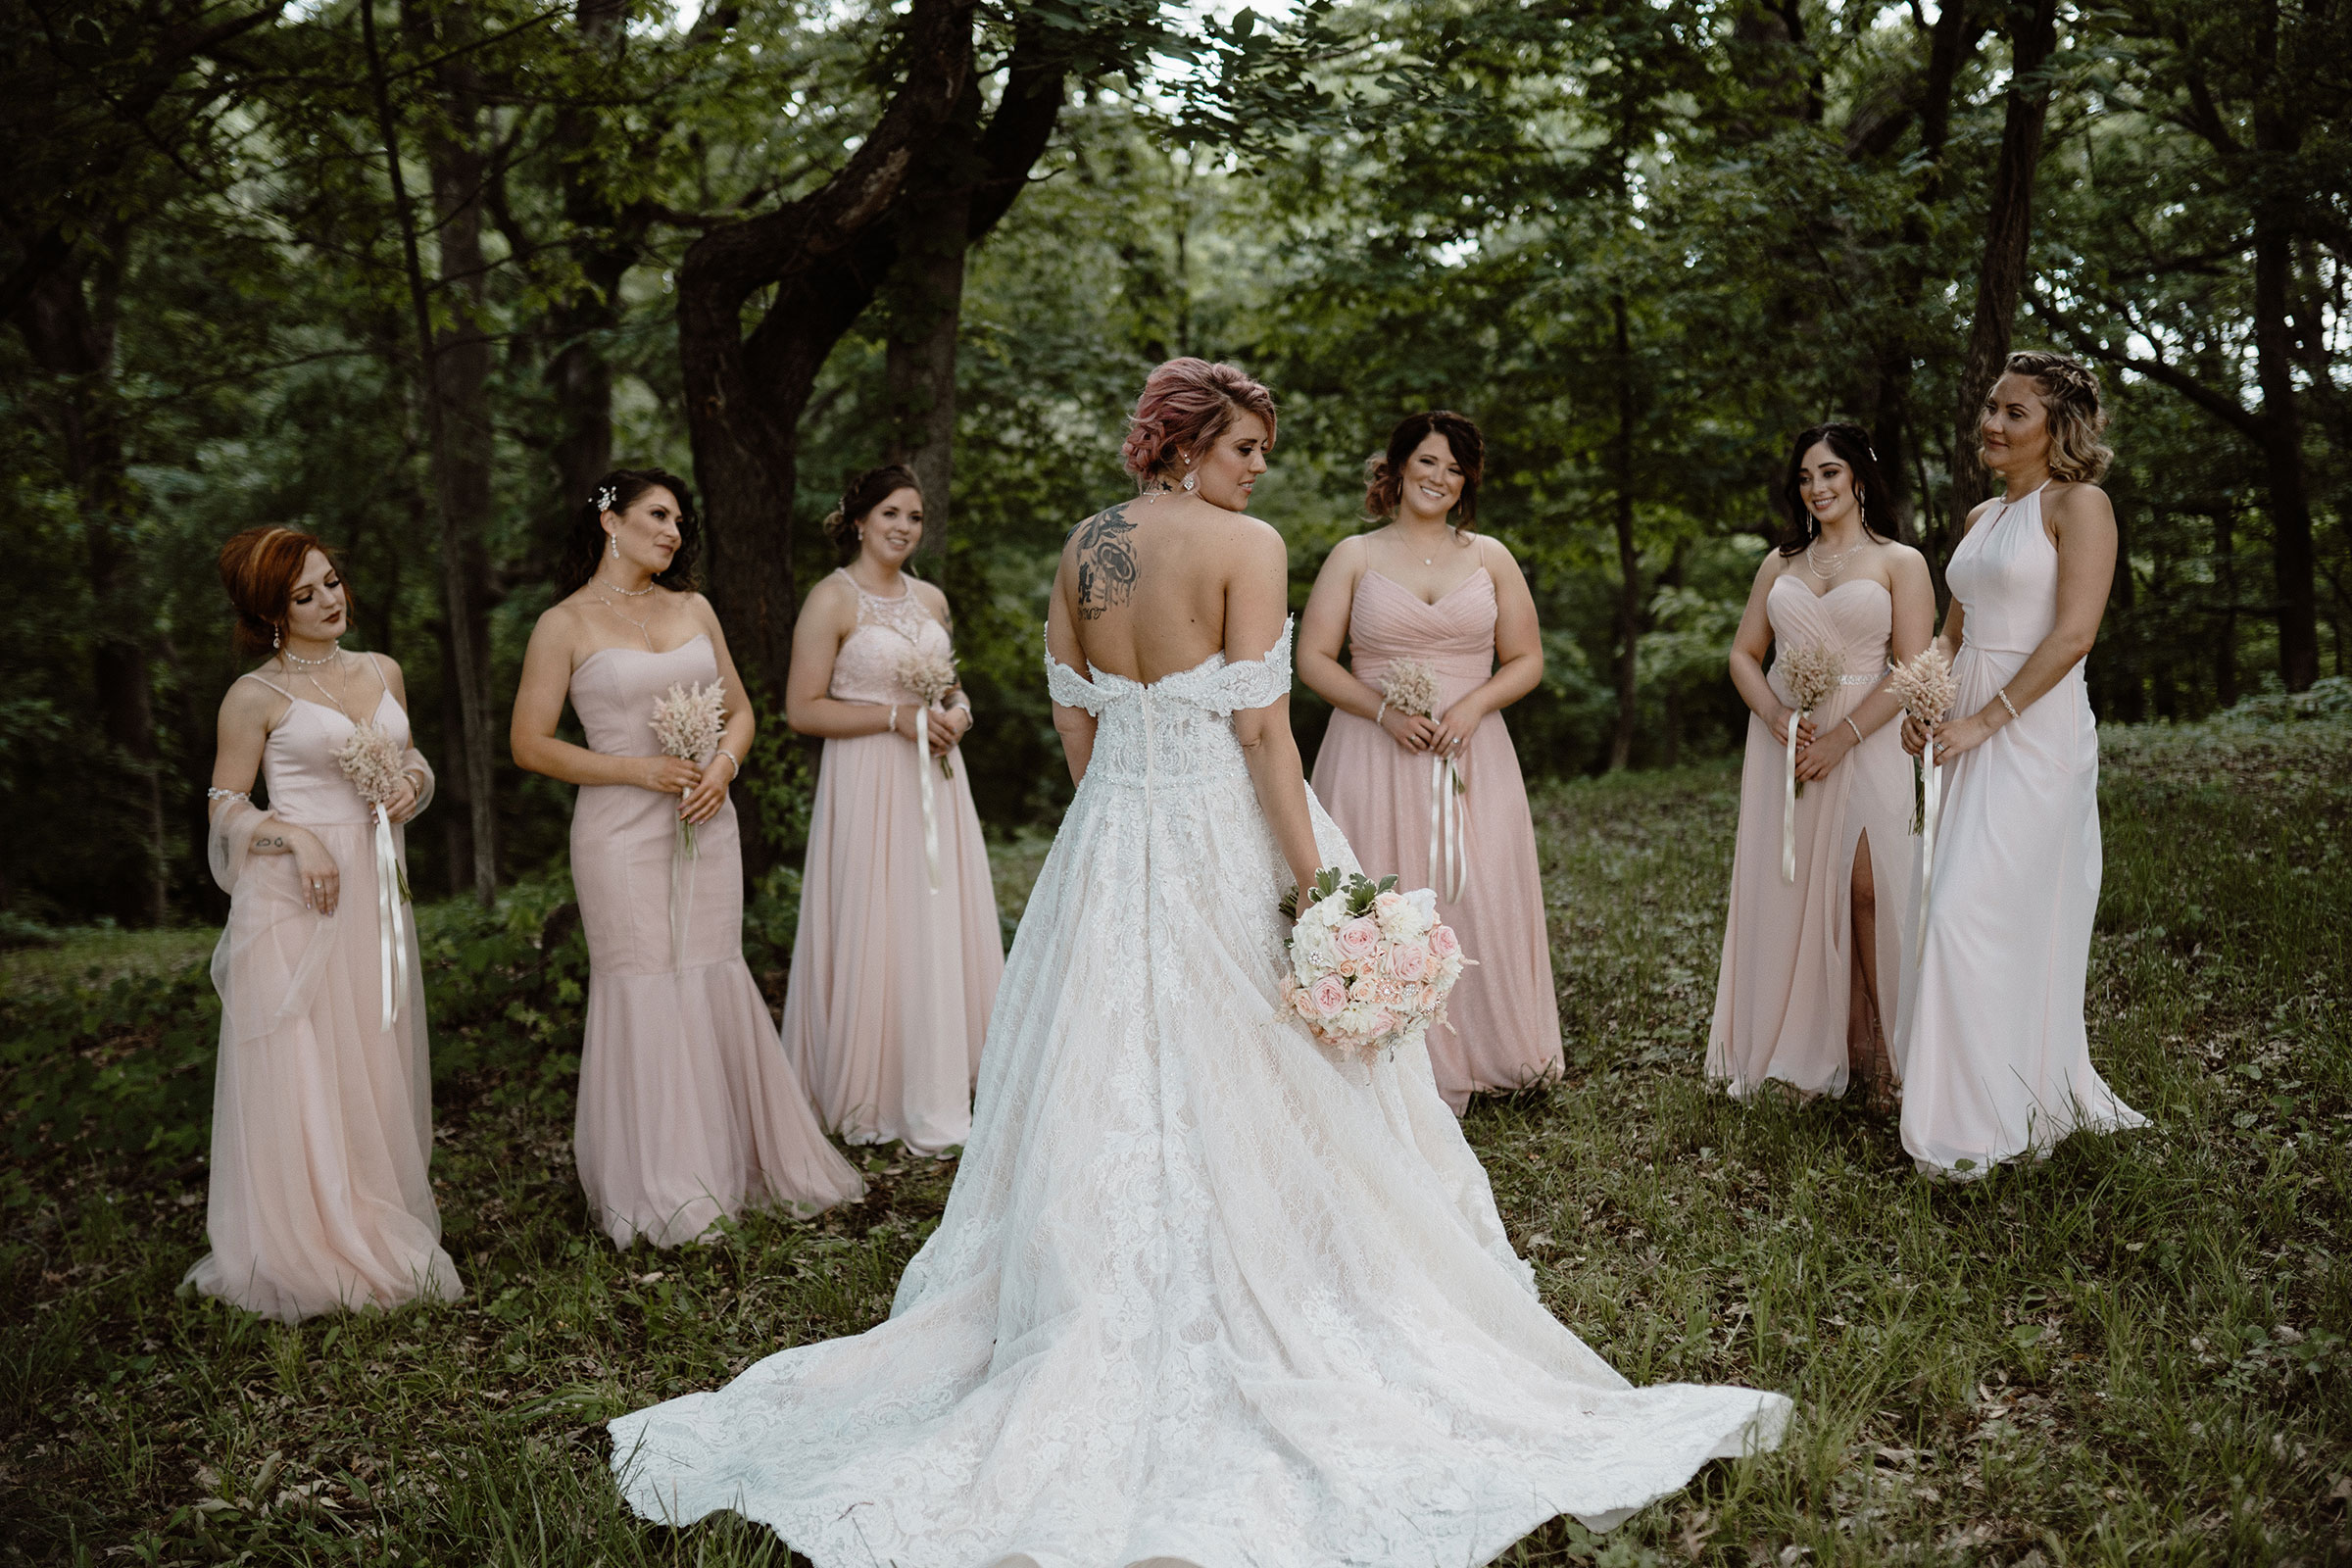 bride-standing-with-her-back-towards-camera-while-bridesmaids-stand-looking-at-her-wedding-summerset-winery-indianola-iowa-raelyn-ramey-photography.jpg